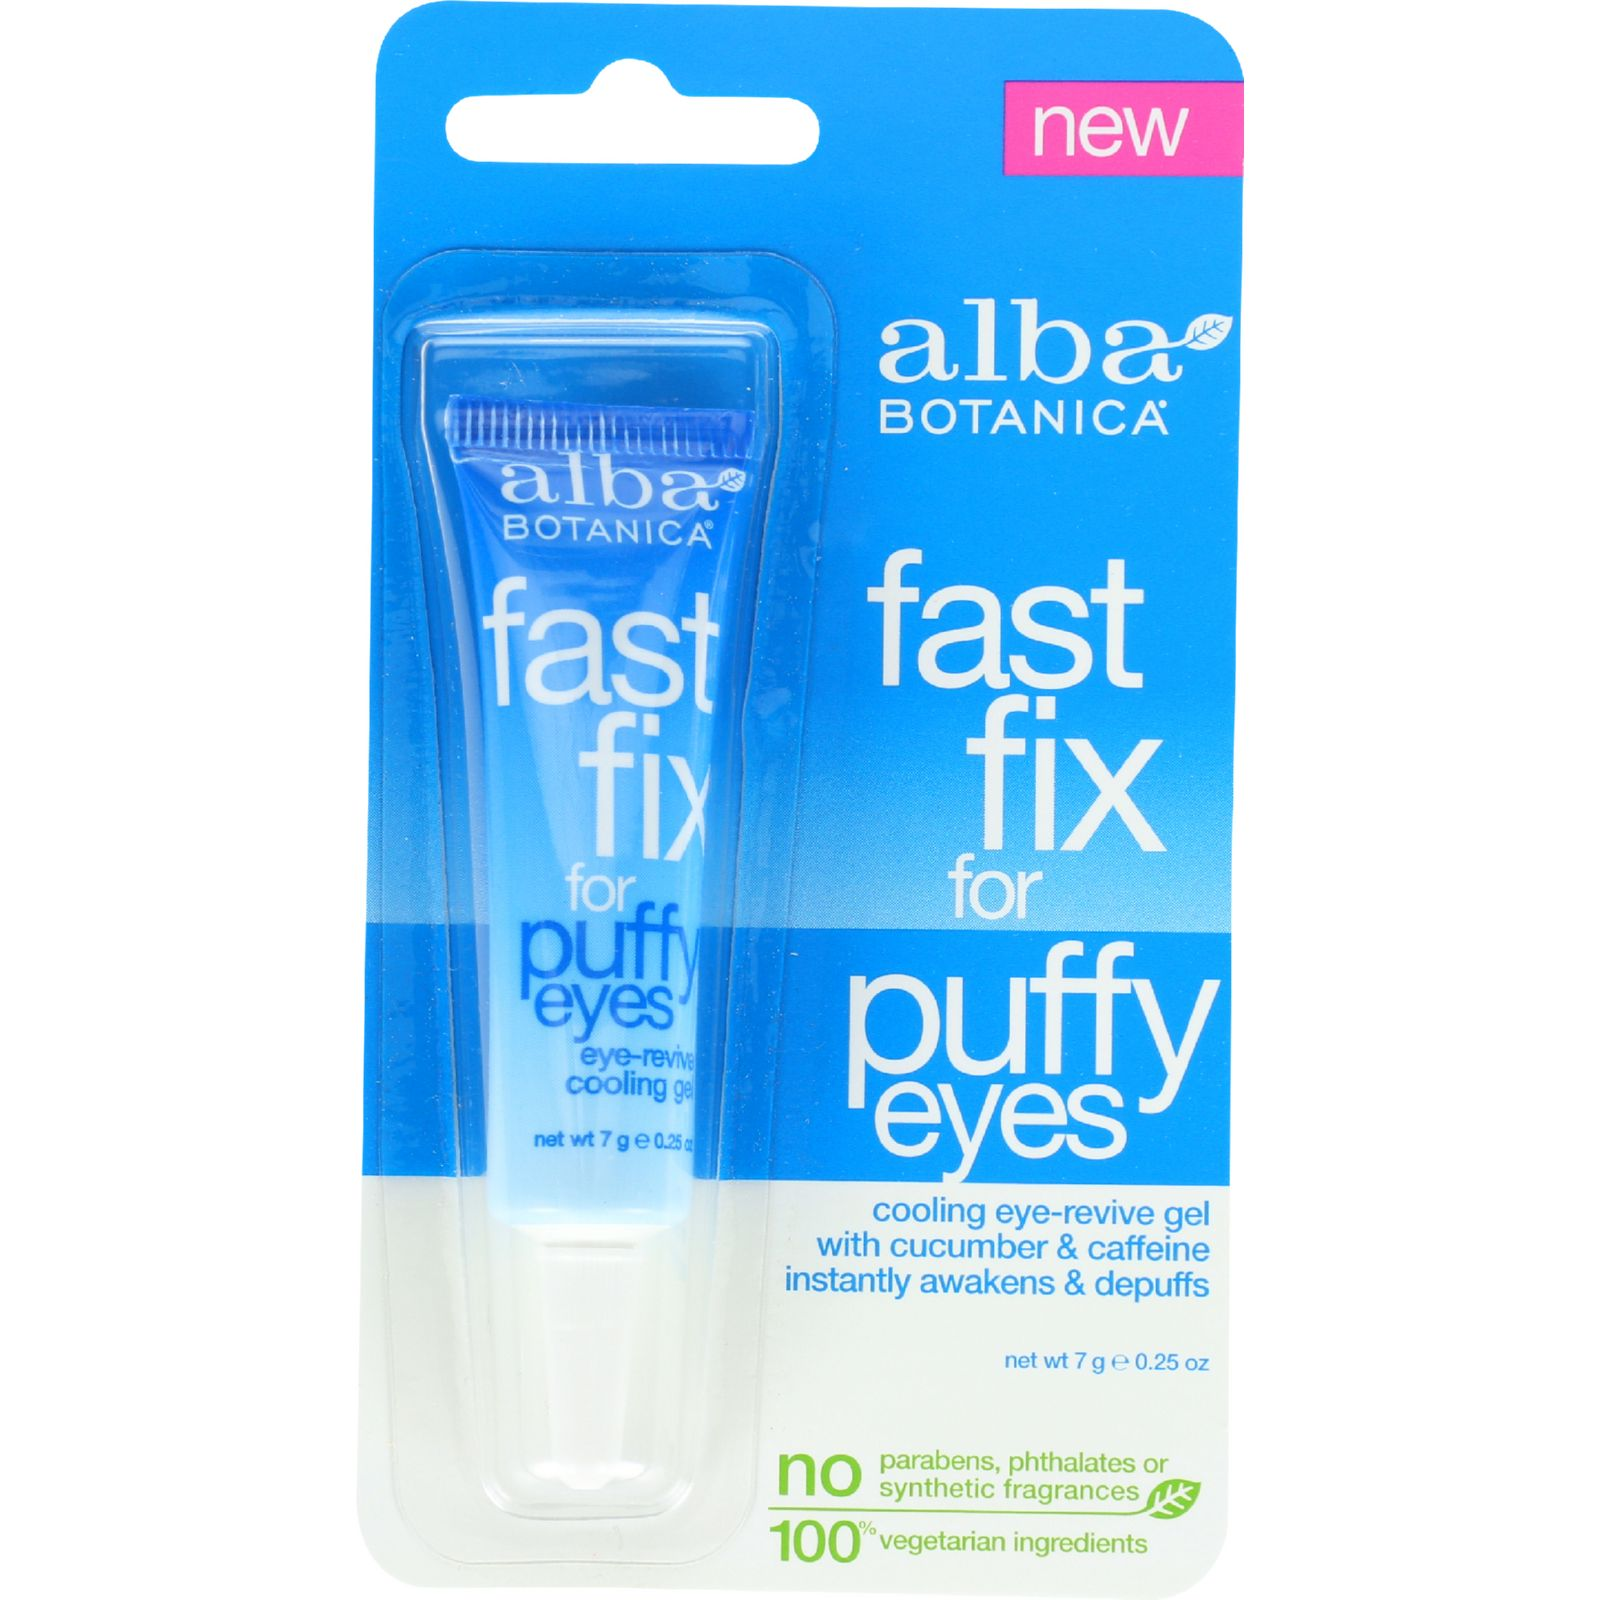 Alba Botanica Fast Fix For Puffy Eyes  .25 oz  Case of 6